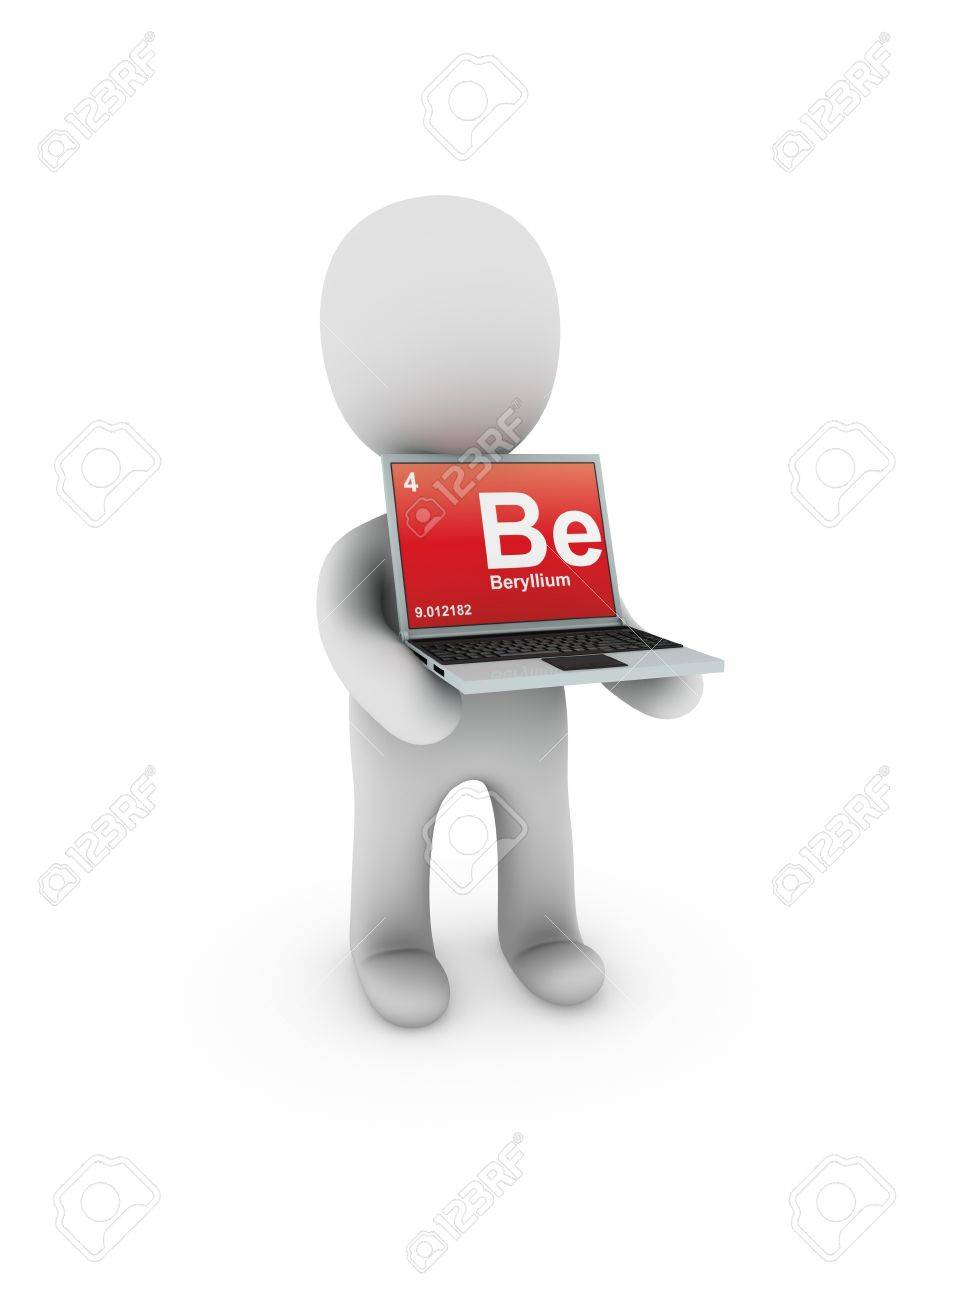 Beryllium symbol on screen laptop stock photo picture and royalty beryllium symbol on screen laptop stock photo 13544037 buycottarizona Image collections